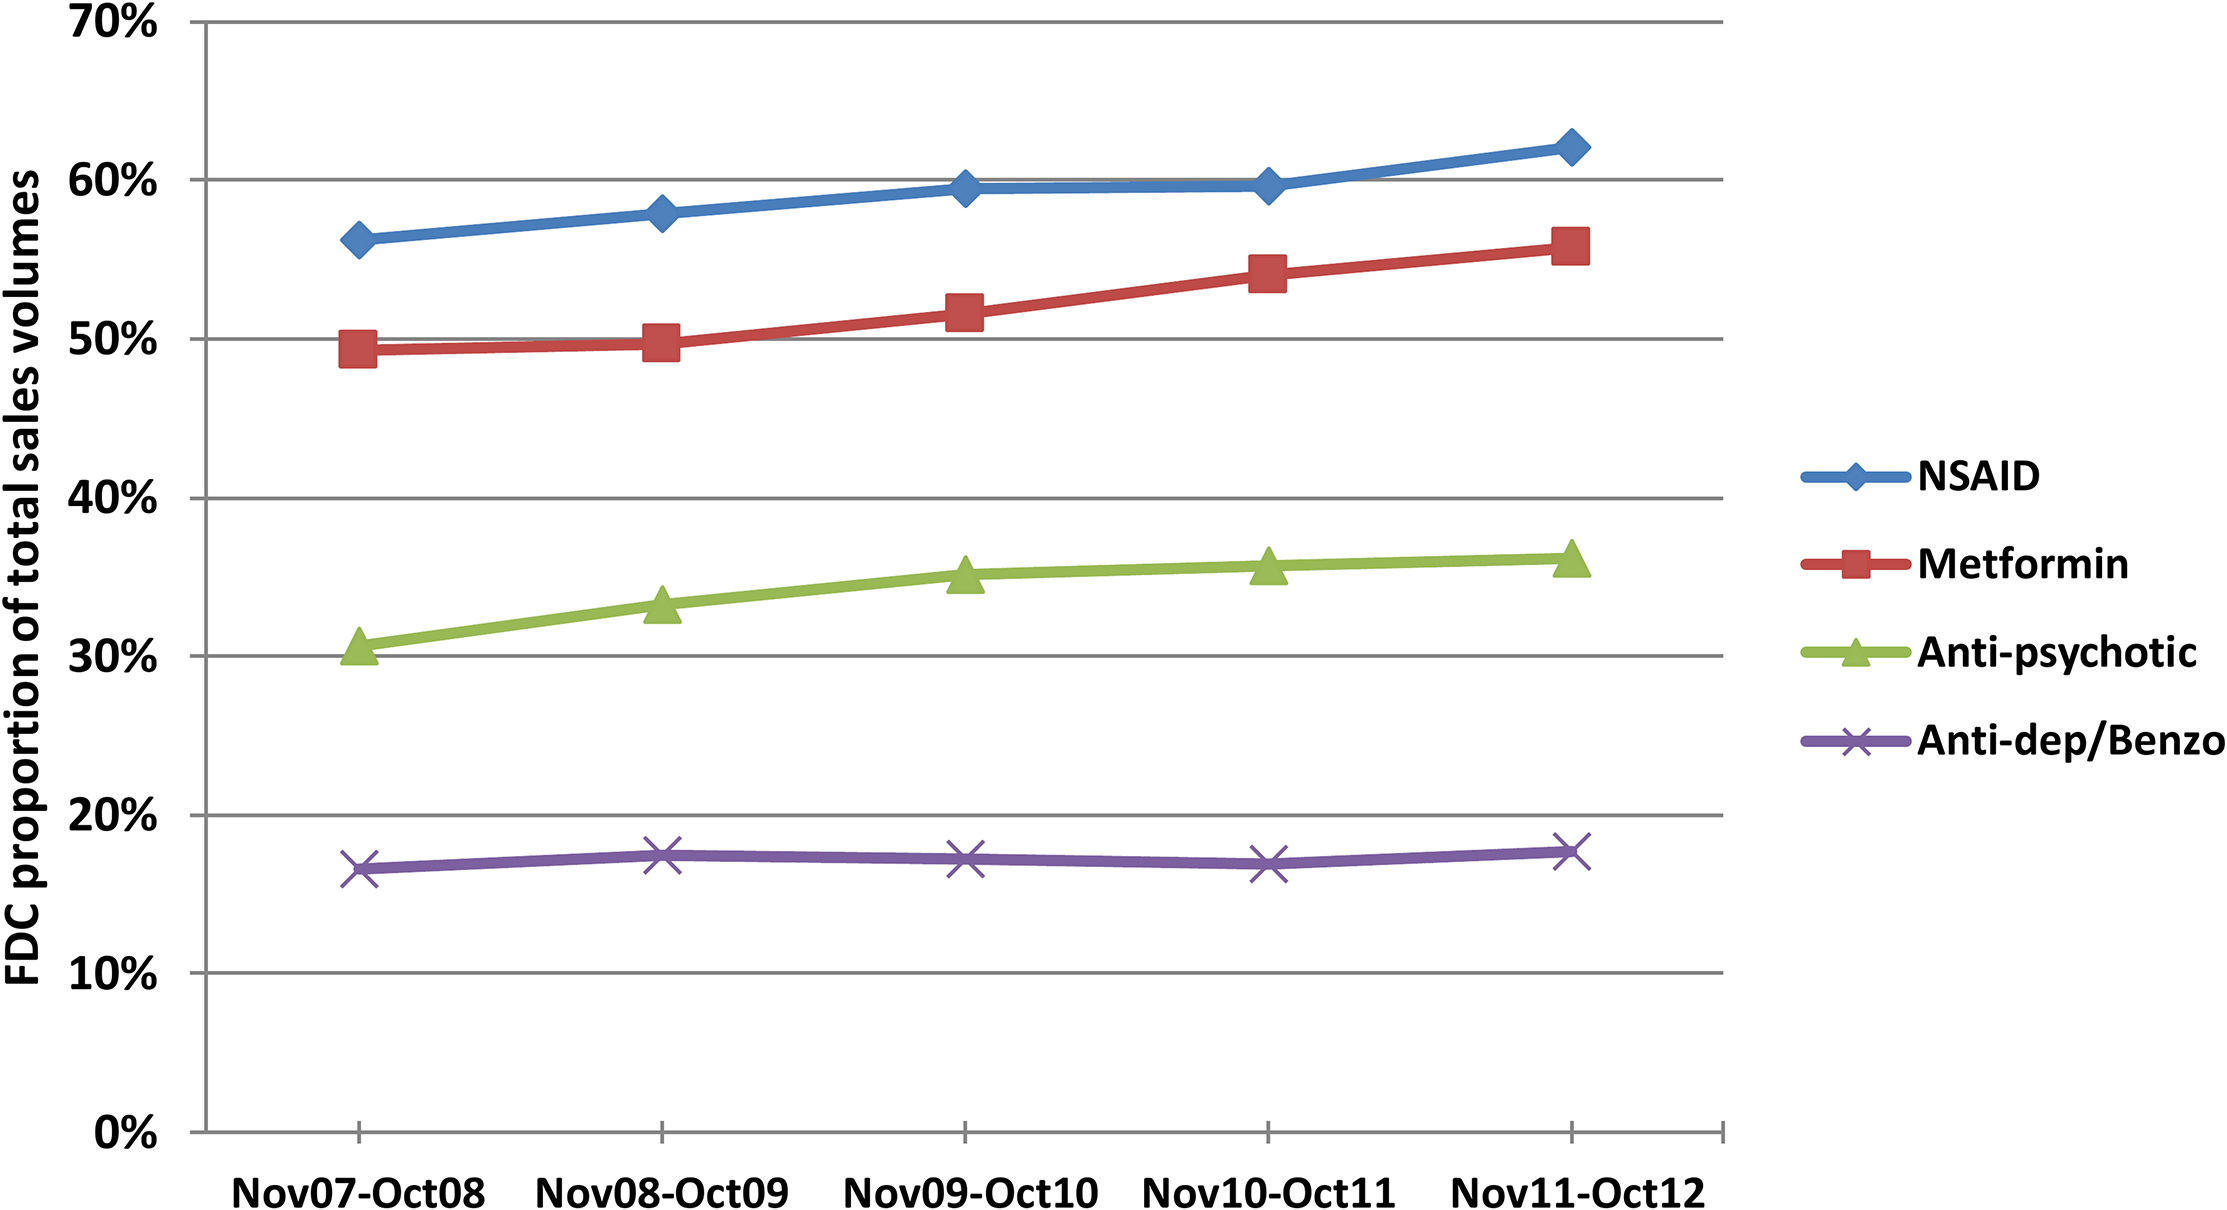 FDCs as proportions of total annual oral drug sales volumes in each therapeutic area, November 2007–October 2012.